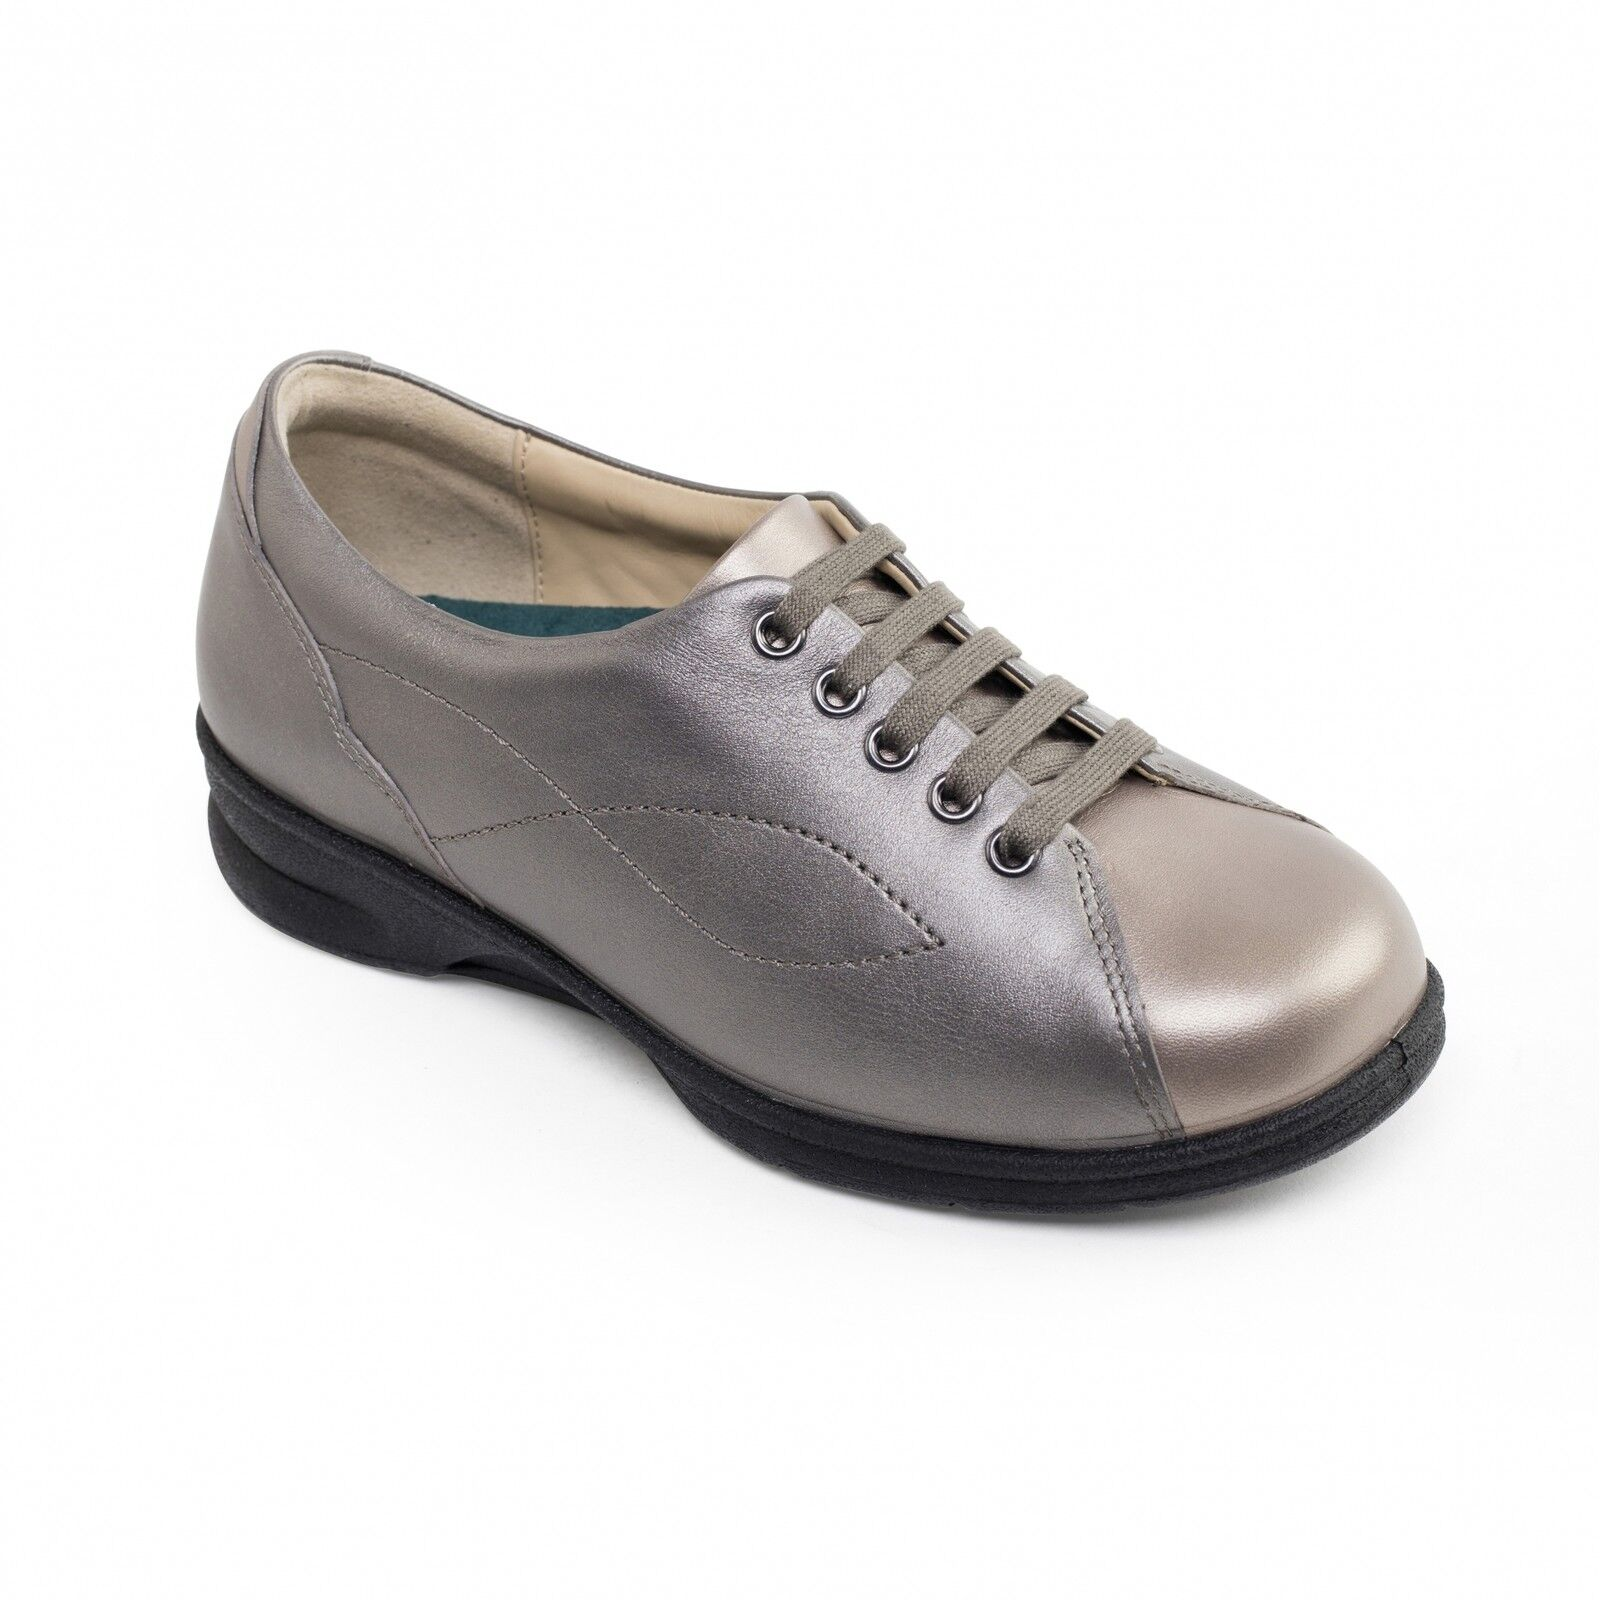 Padders KIRA Ladies Leather Super Wide Plus Lace Up Trainer  Chaussures  Metallic/Combi